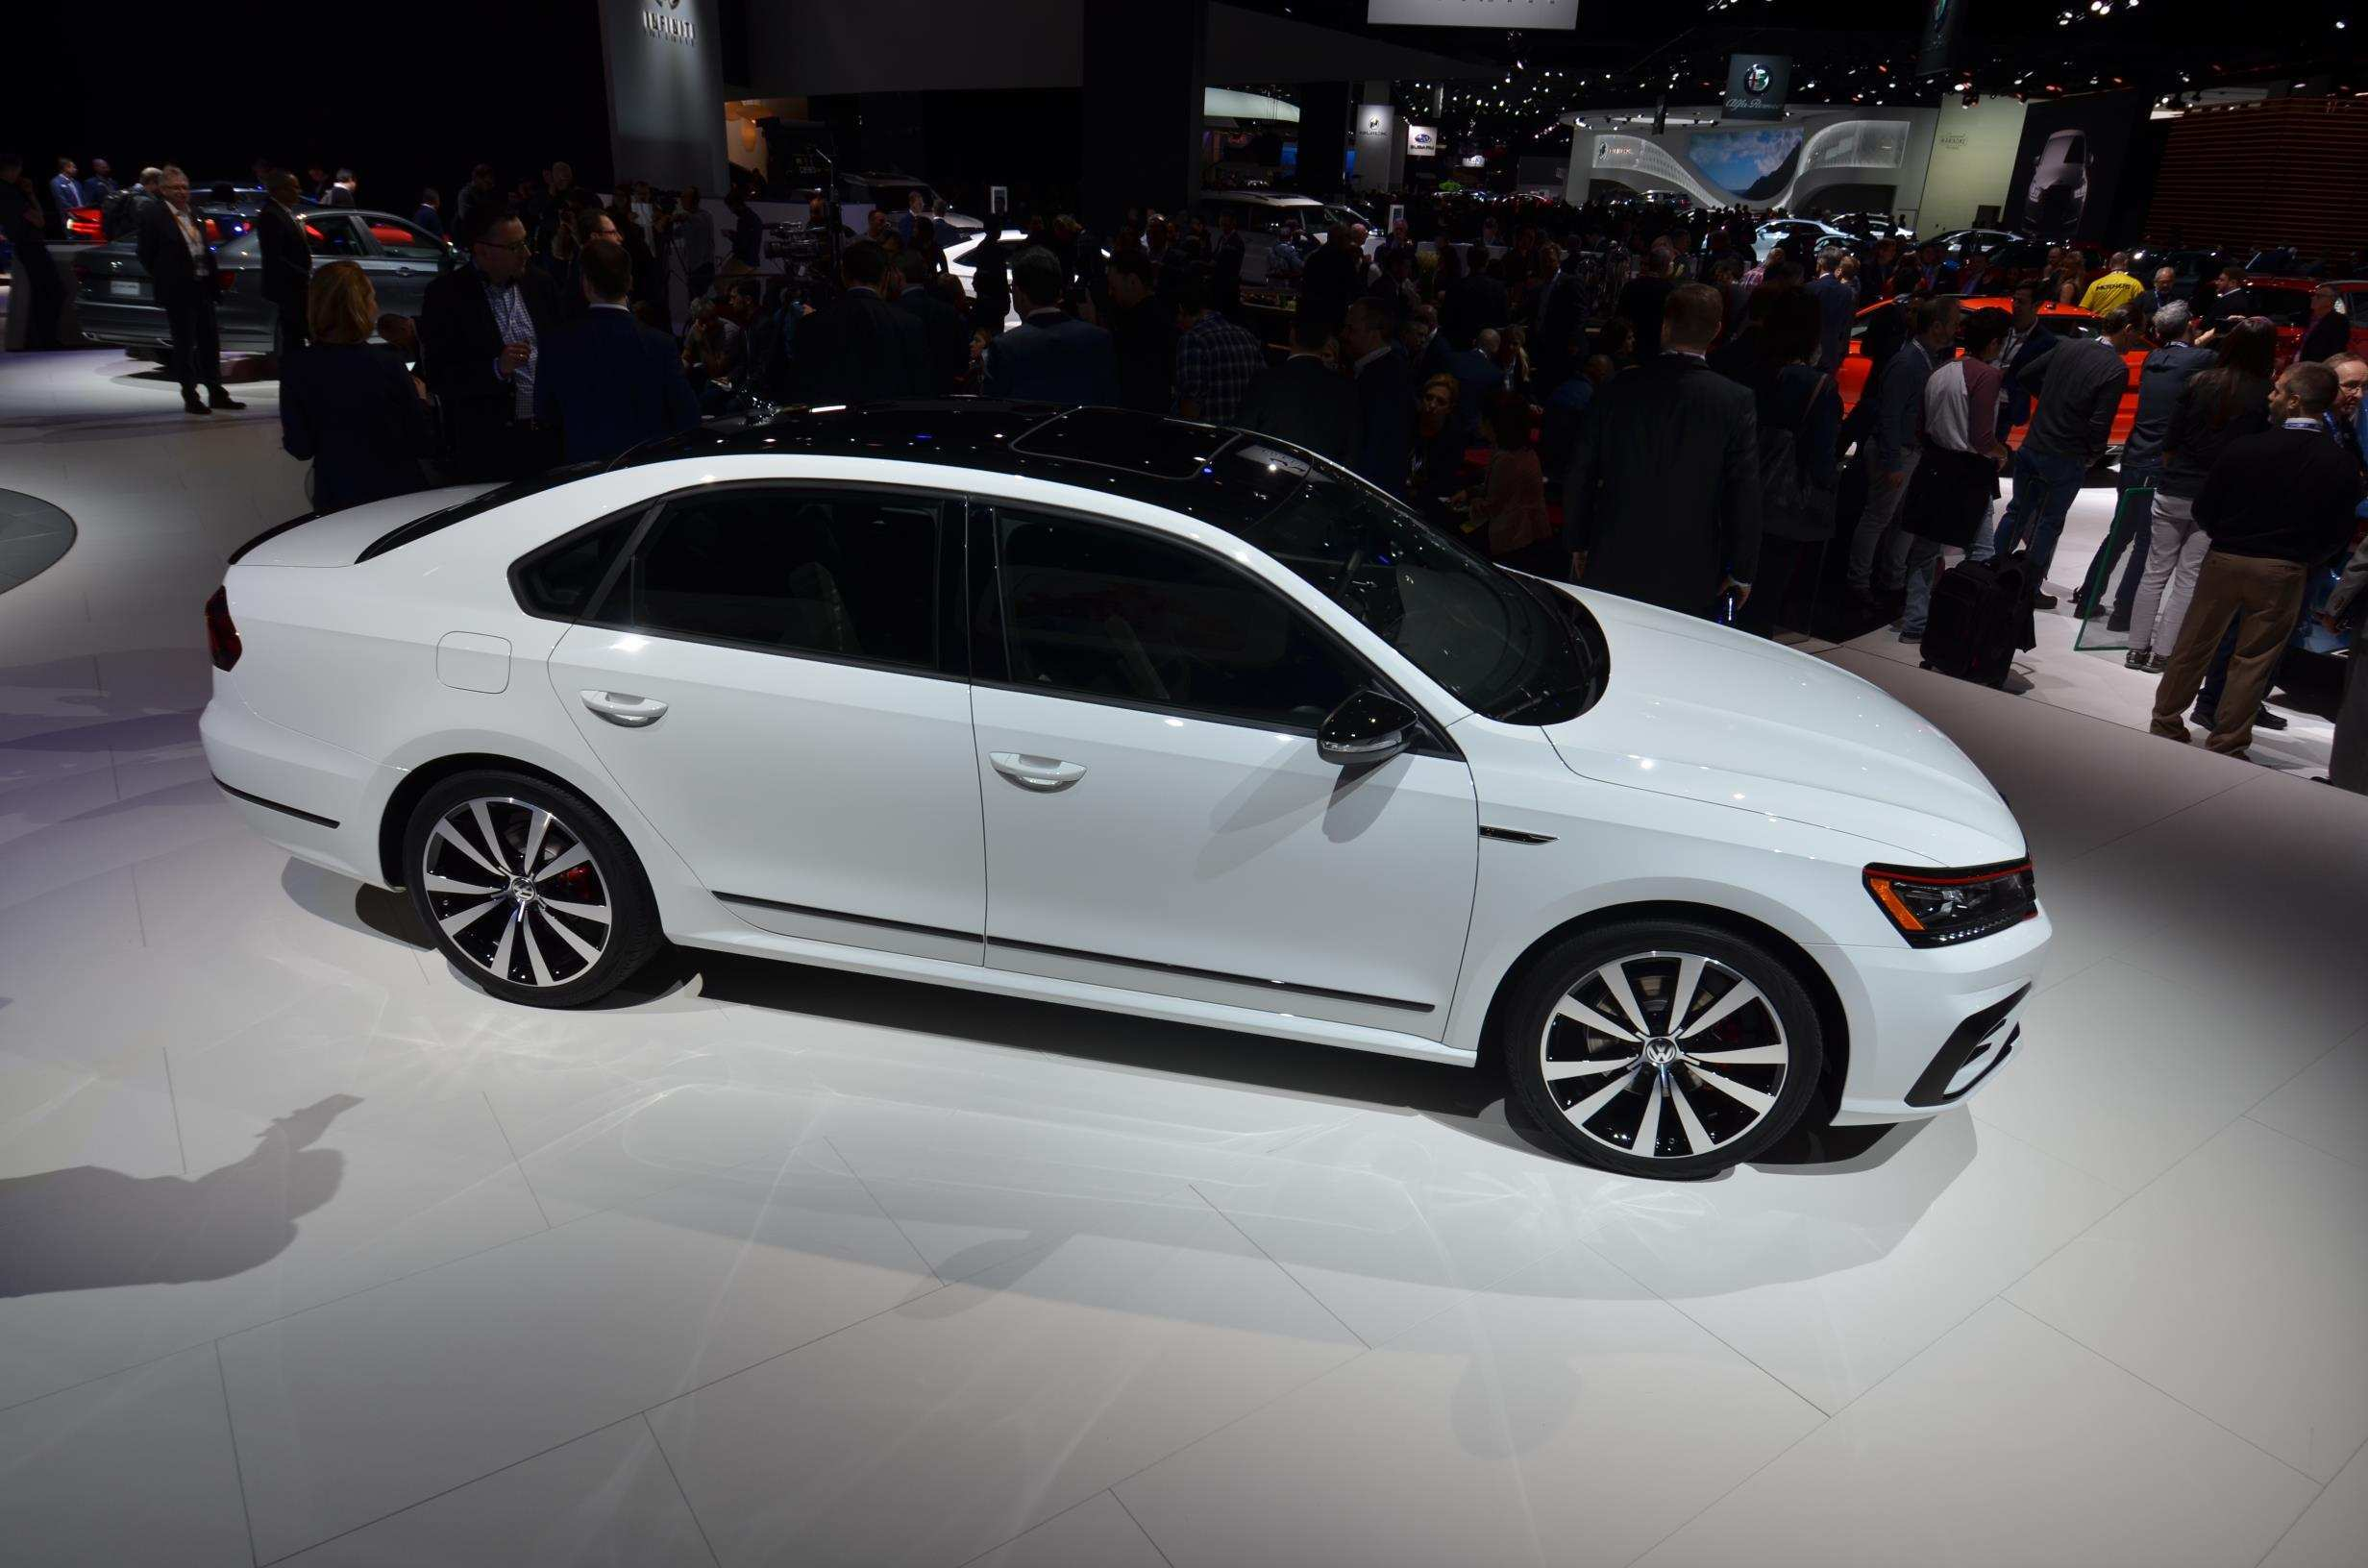 61 All New Volkswagen 2019 Lineup New Concept